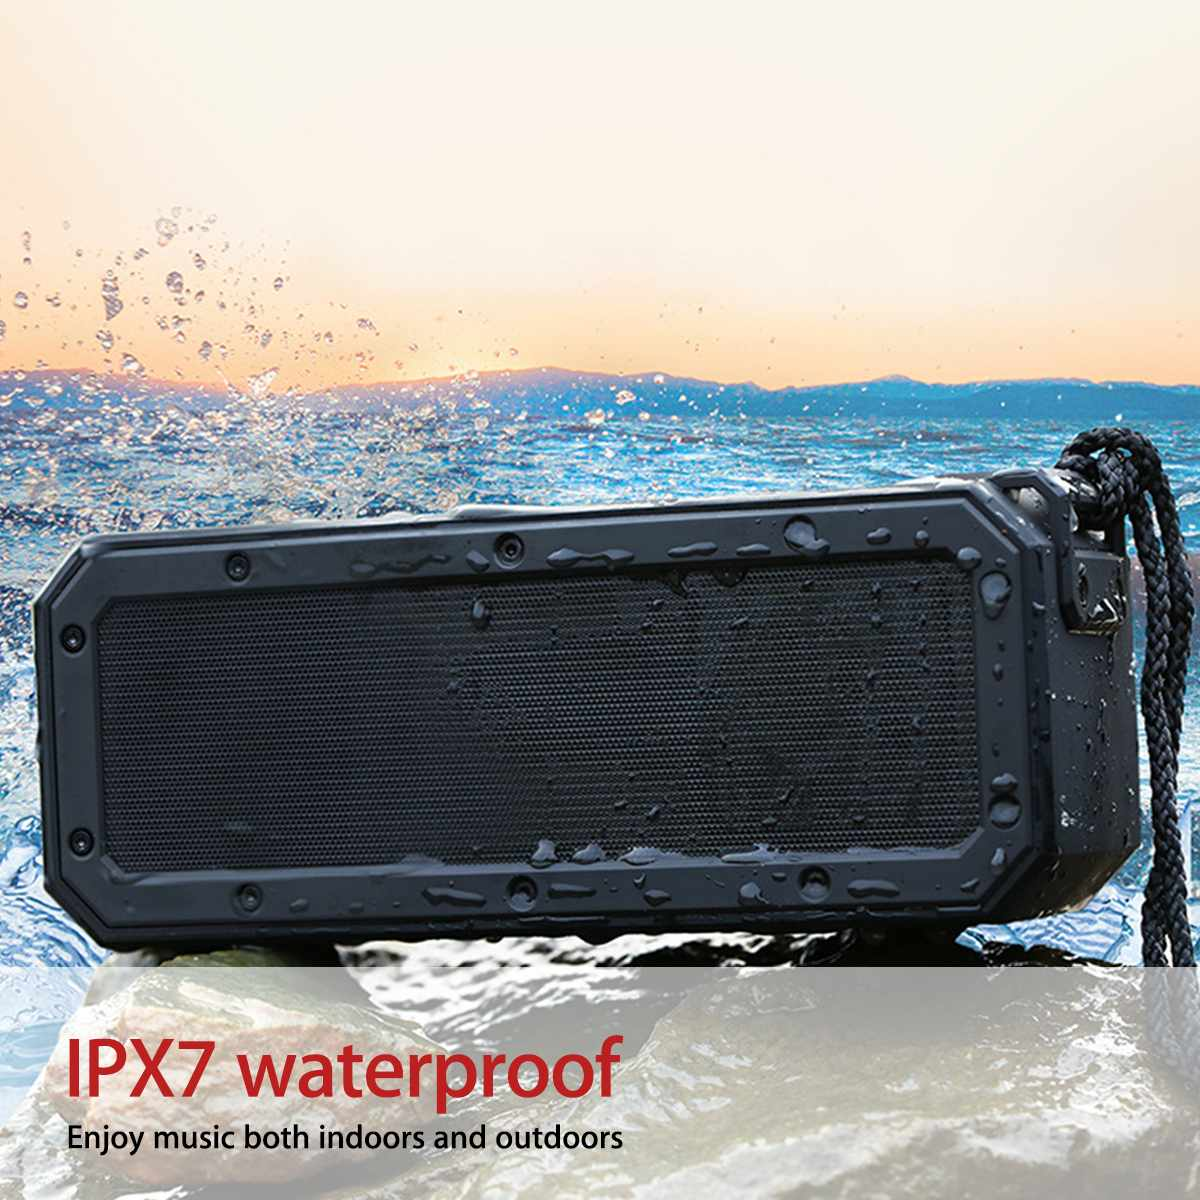 40W bluetooth 5 0 Speaker Column Portable Speaker IPX7 Waterproof Subwoofer with 360 Stereo Sound Outdoor Speakers Boombox in Subwoofer from Consumer Electronics